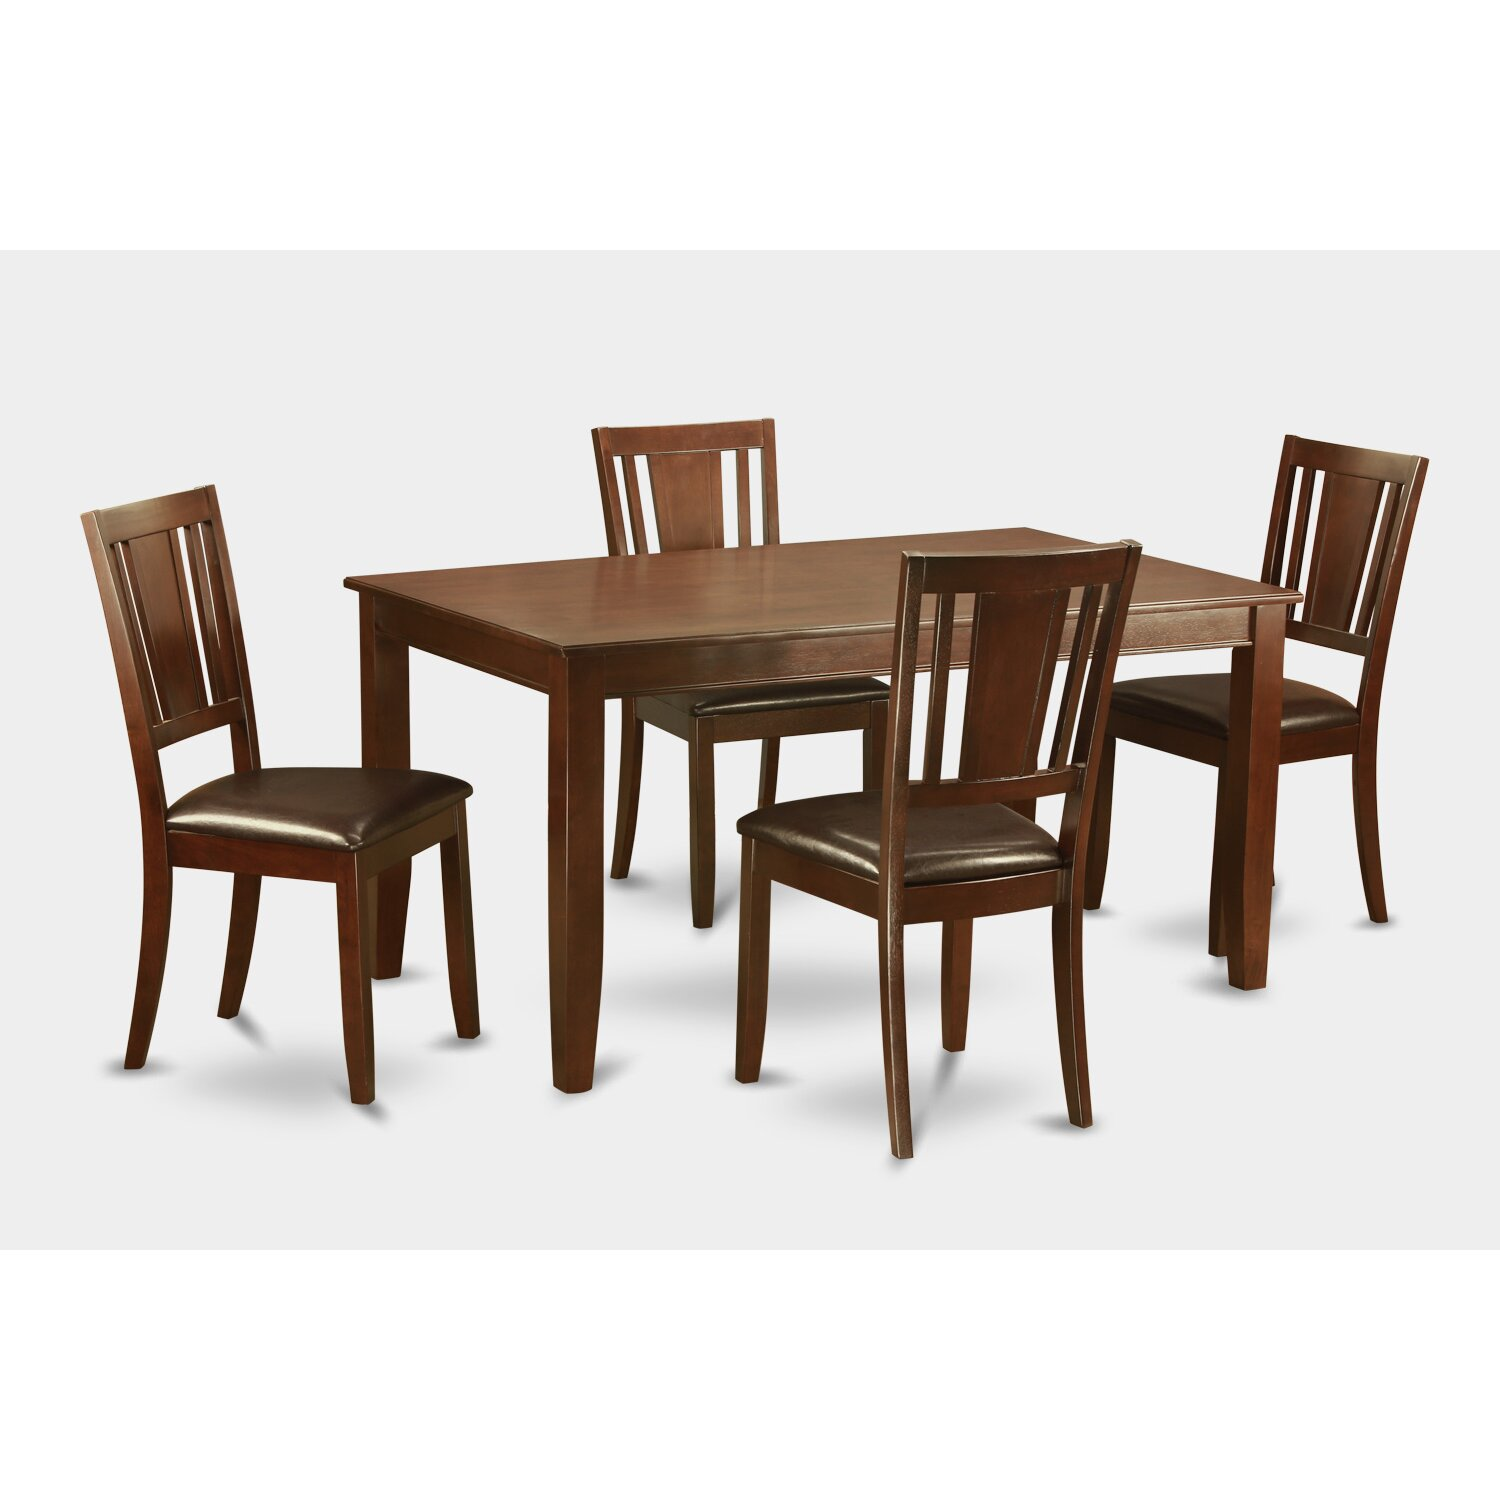 Wooden Importers 3 Piece Dining Set Reviews: Wooden Importers Dudley 5 Piece Dining Set & Reviews